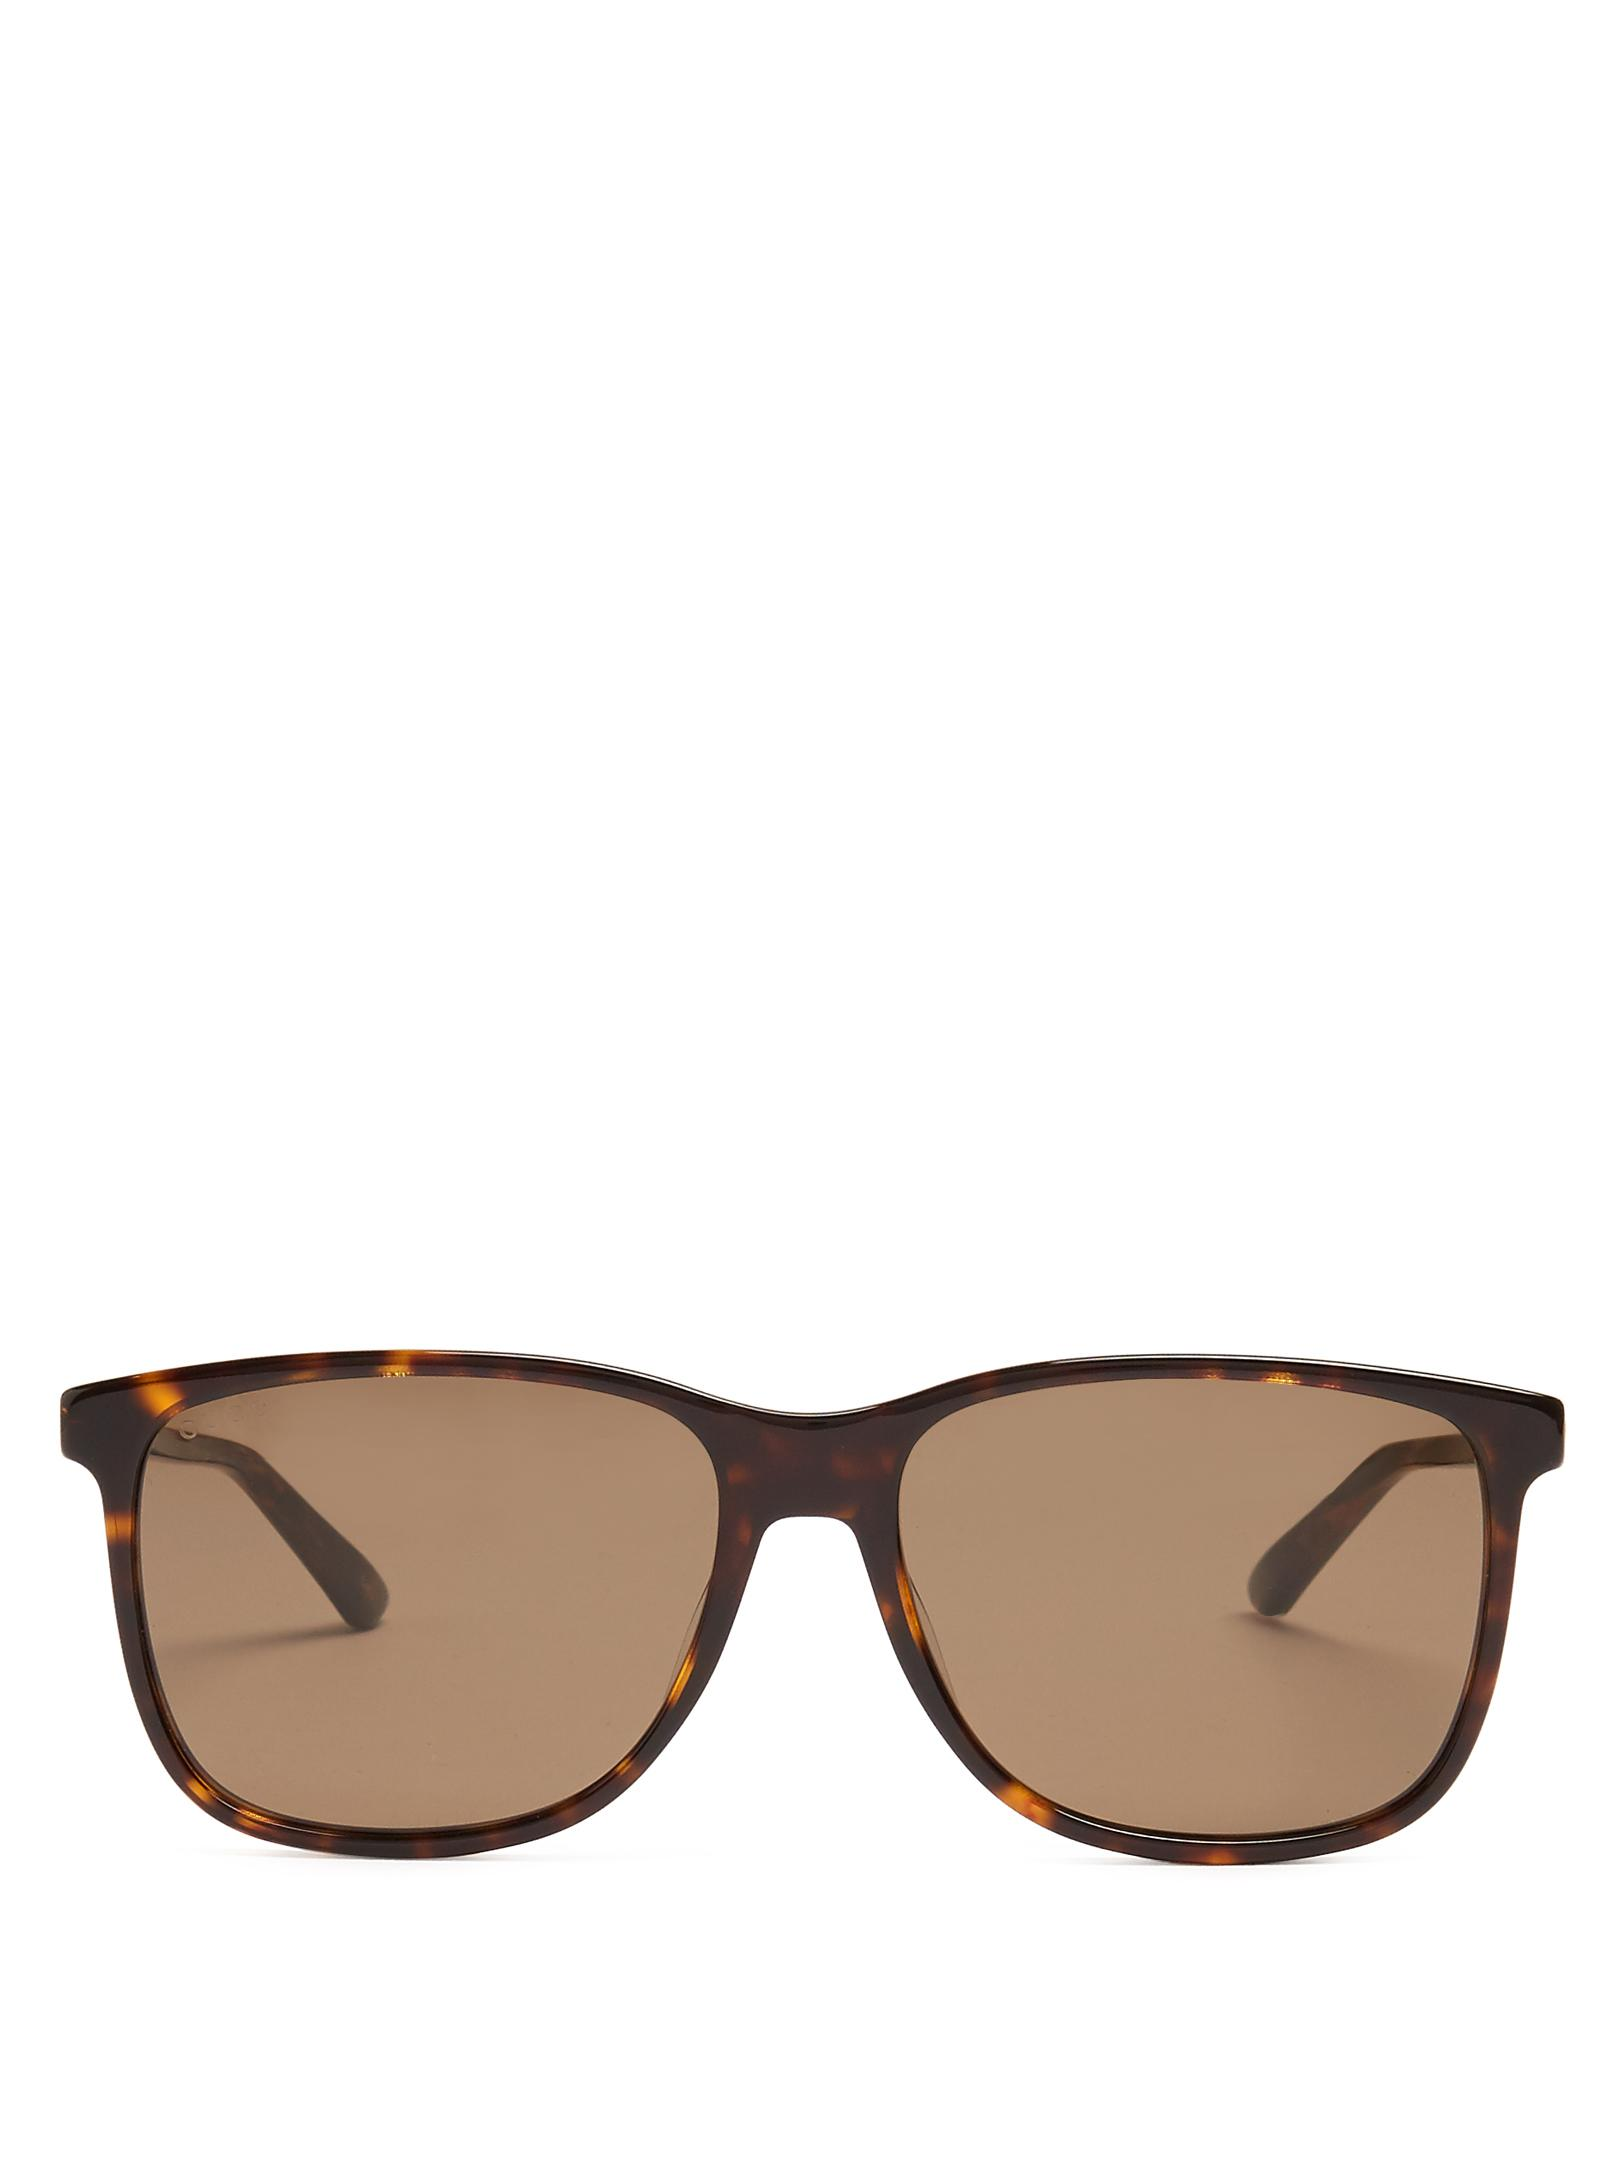 9973d31ea8 Gucci Square-frame Acetate Sunglasses in Brown for Men